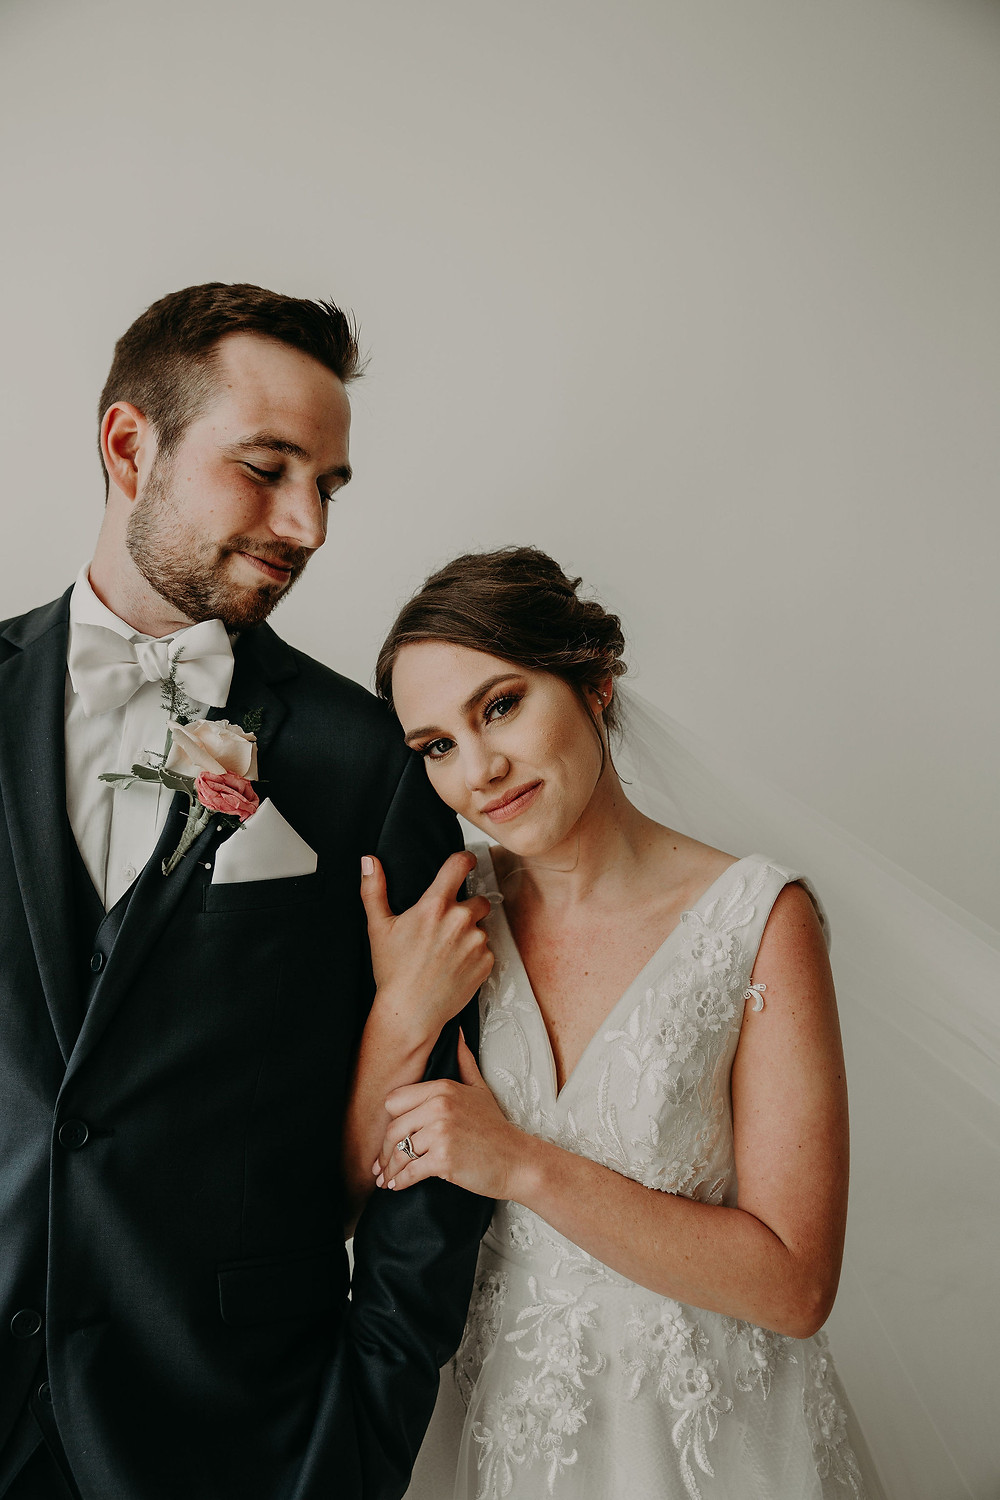 Watertown New York wedding: Summer Small Wedding at The Lincoln Loft by Pretty Little Vintage Co.